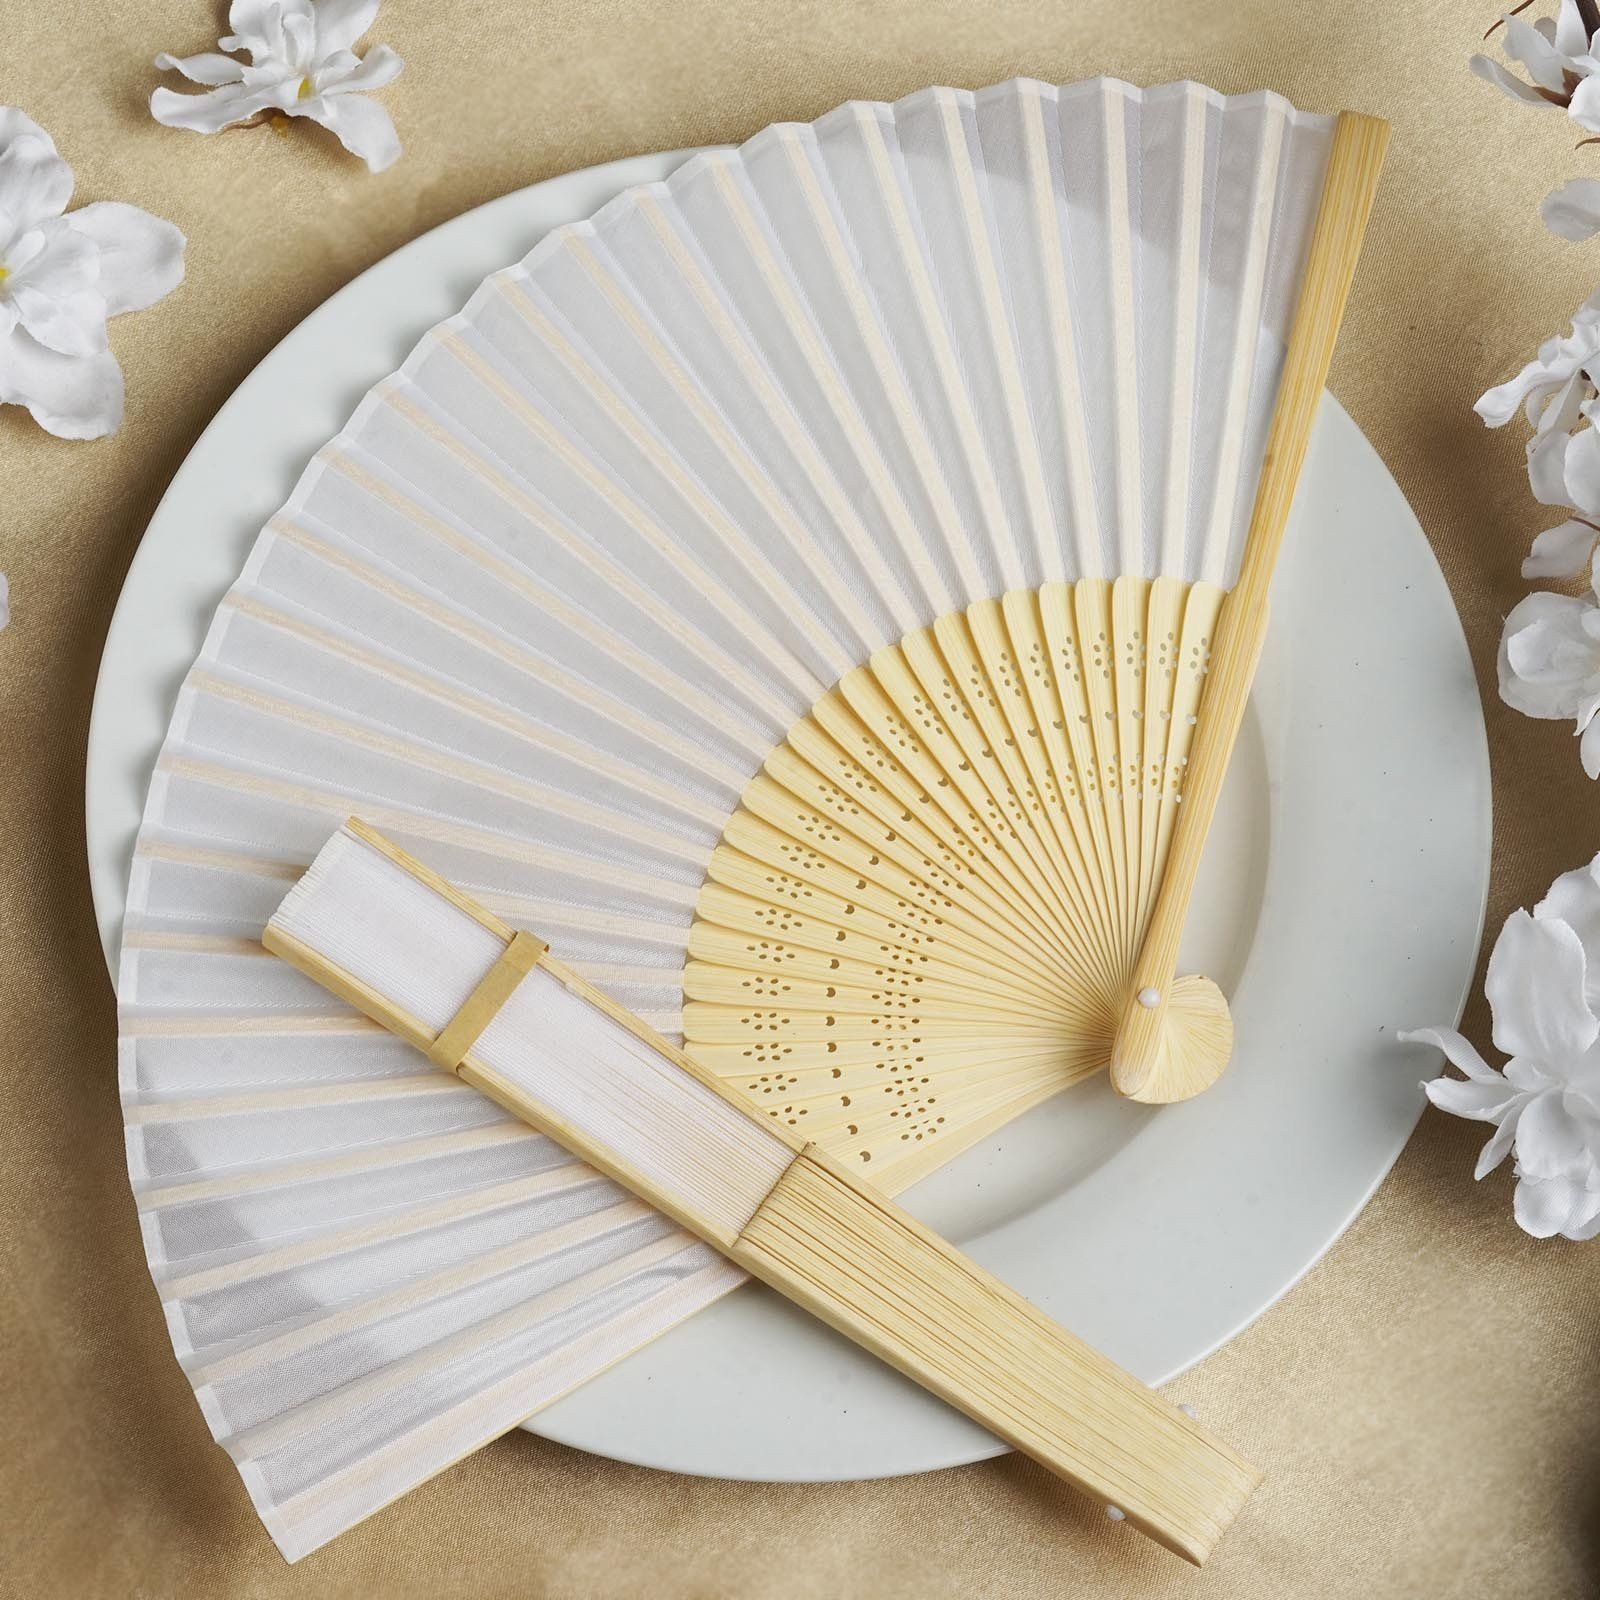 Awesome Hand Held Fans For Weddings Pictures - Styles & Ideas 2018 ...